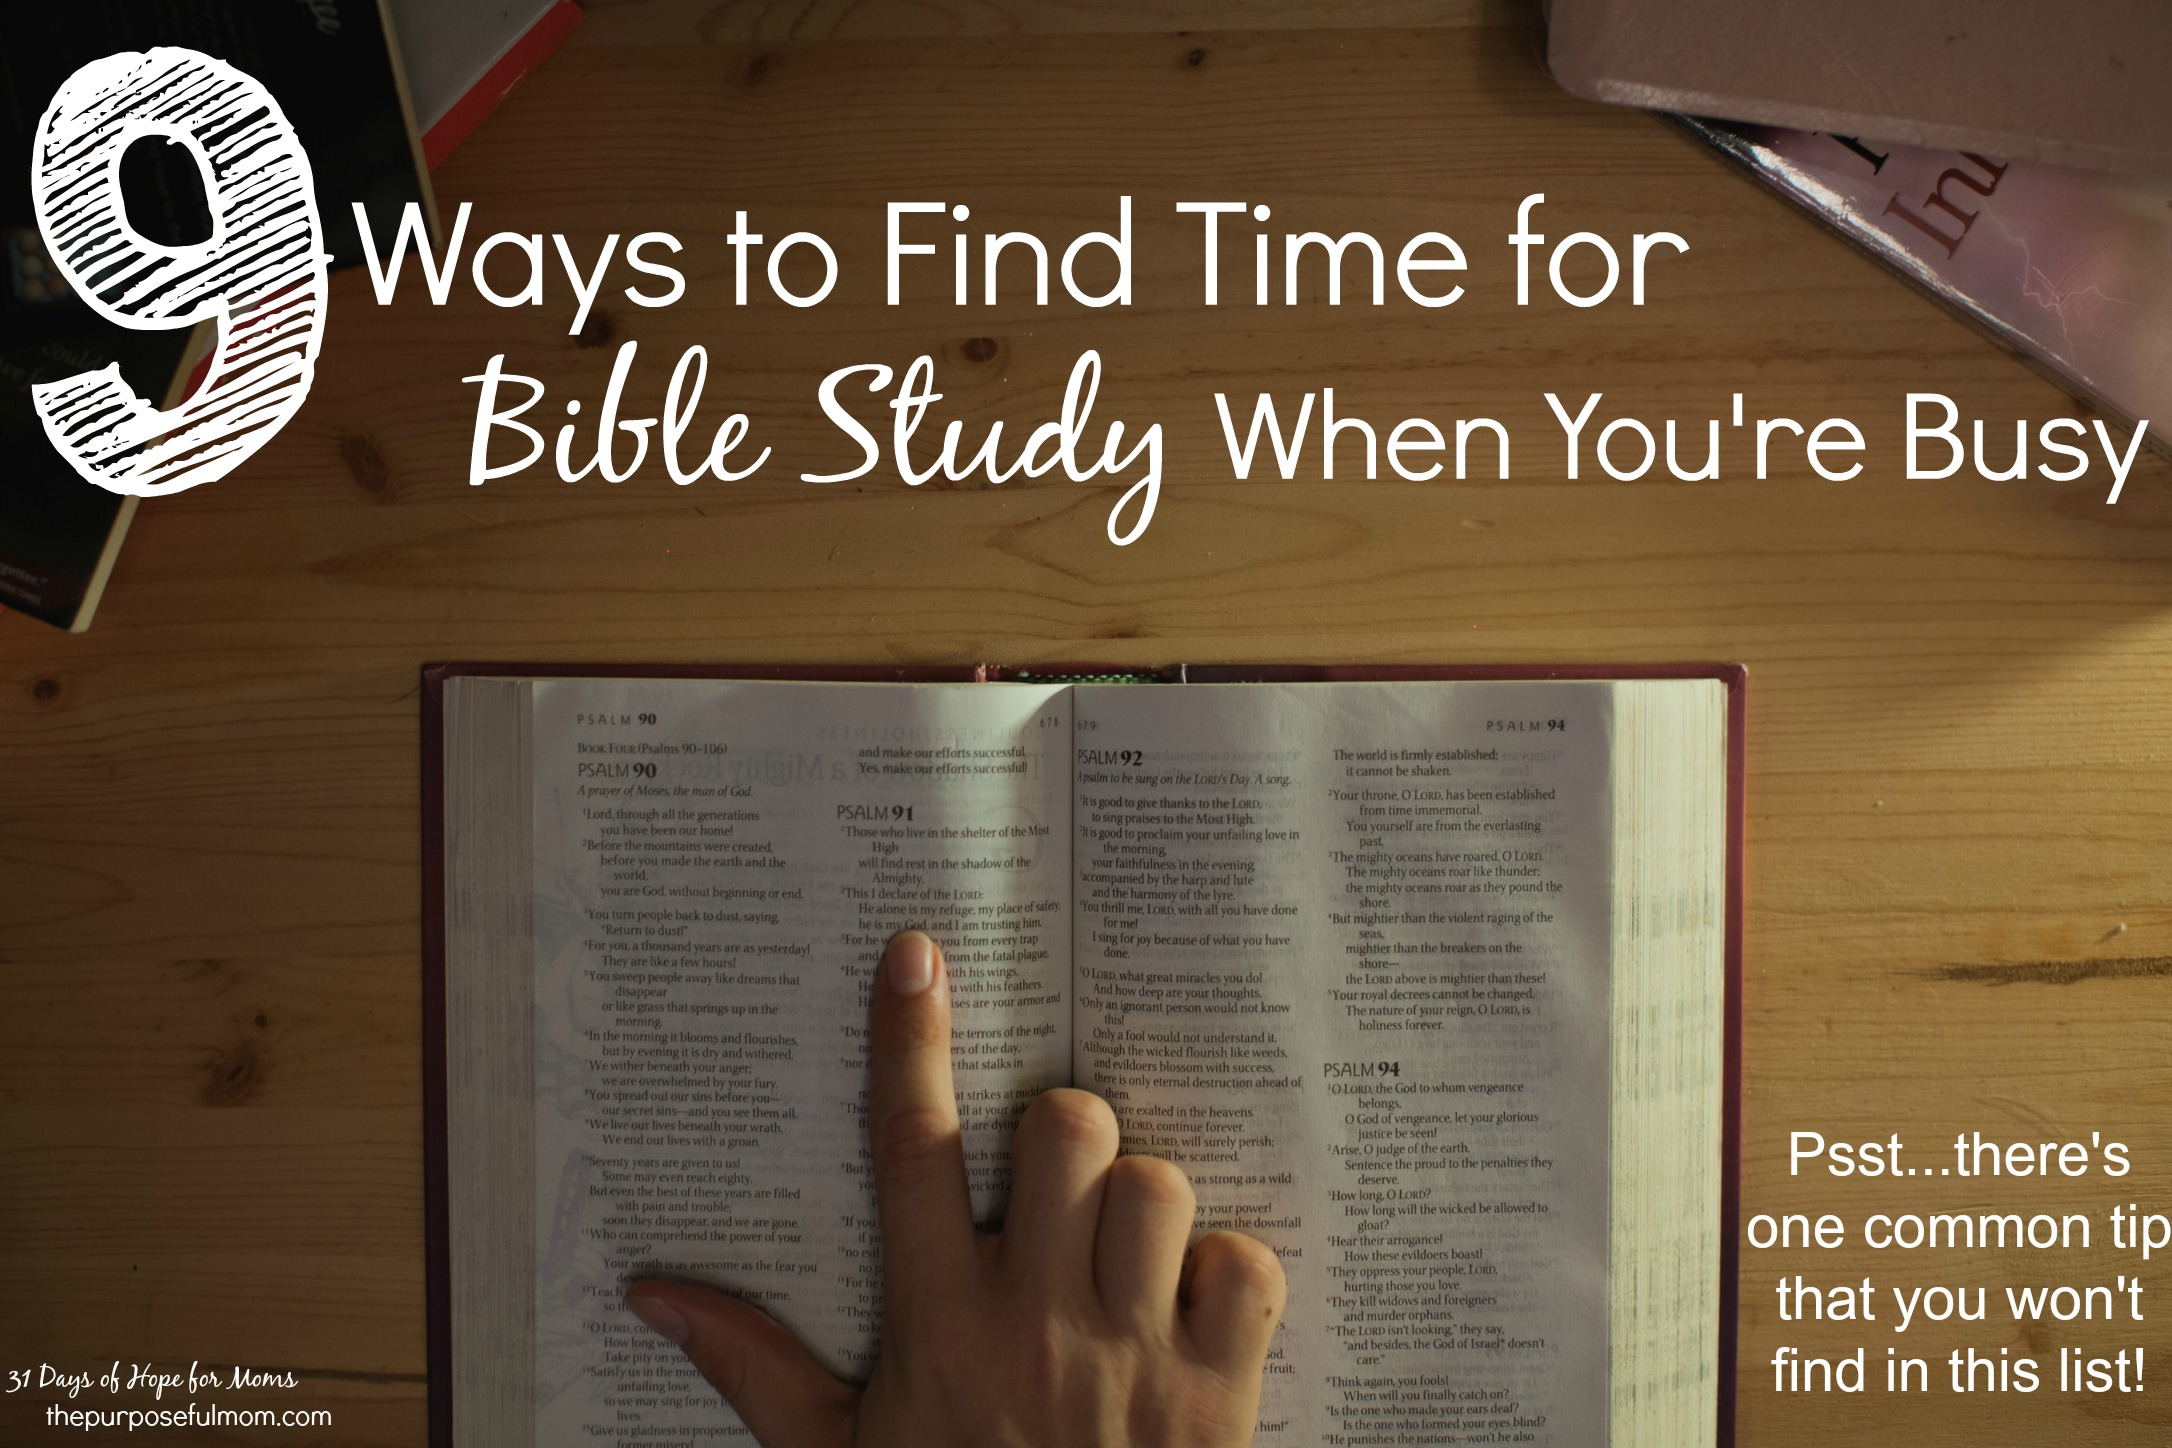 9 ways to find time for Bible study when you're busy